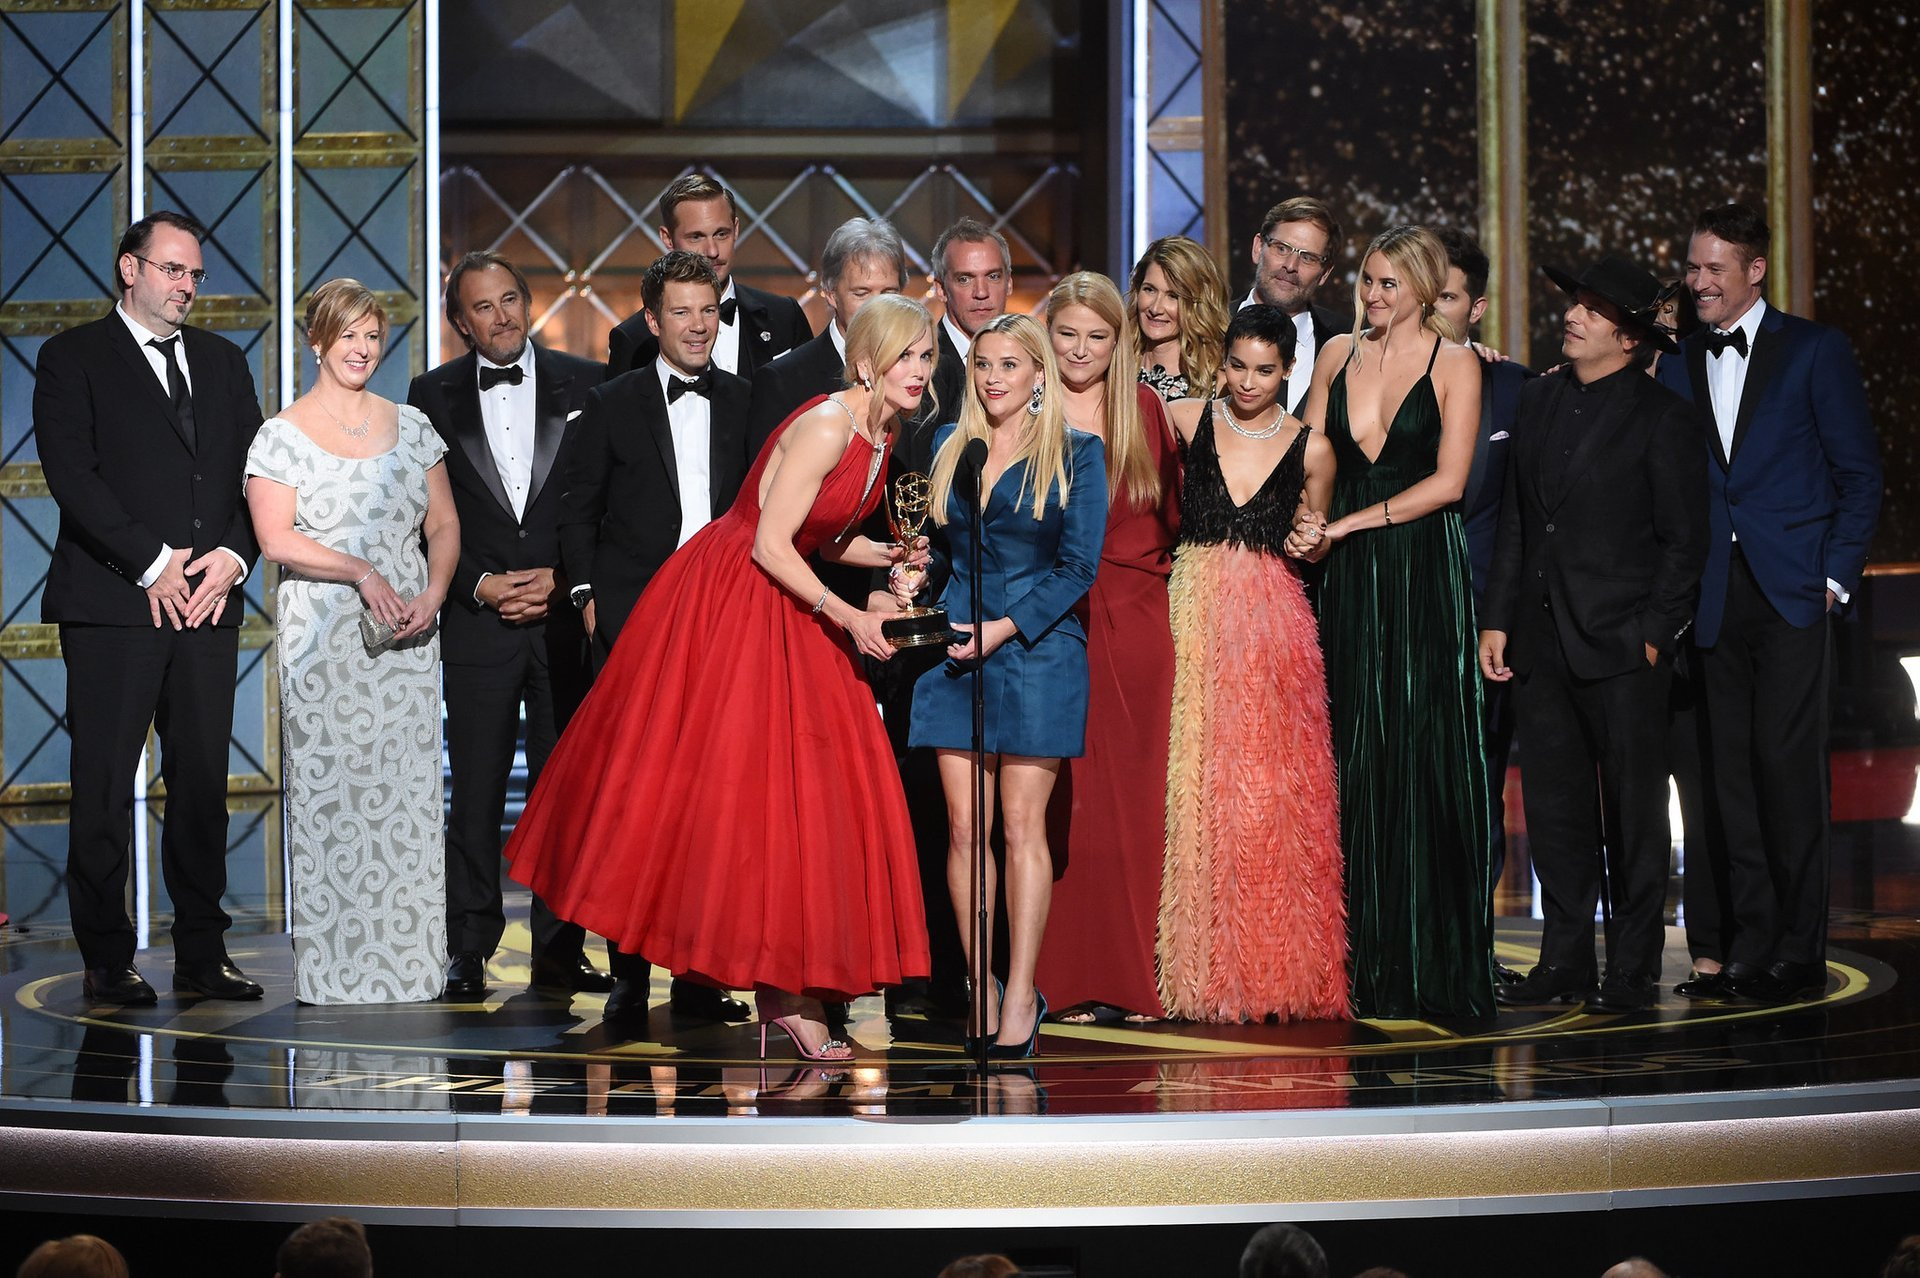 Emmy Awards in Los Angeles - Best Season 2019